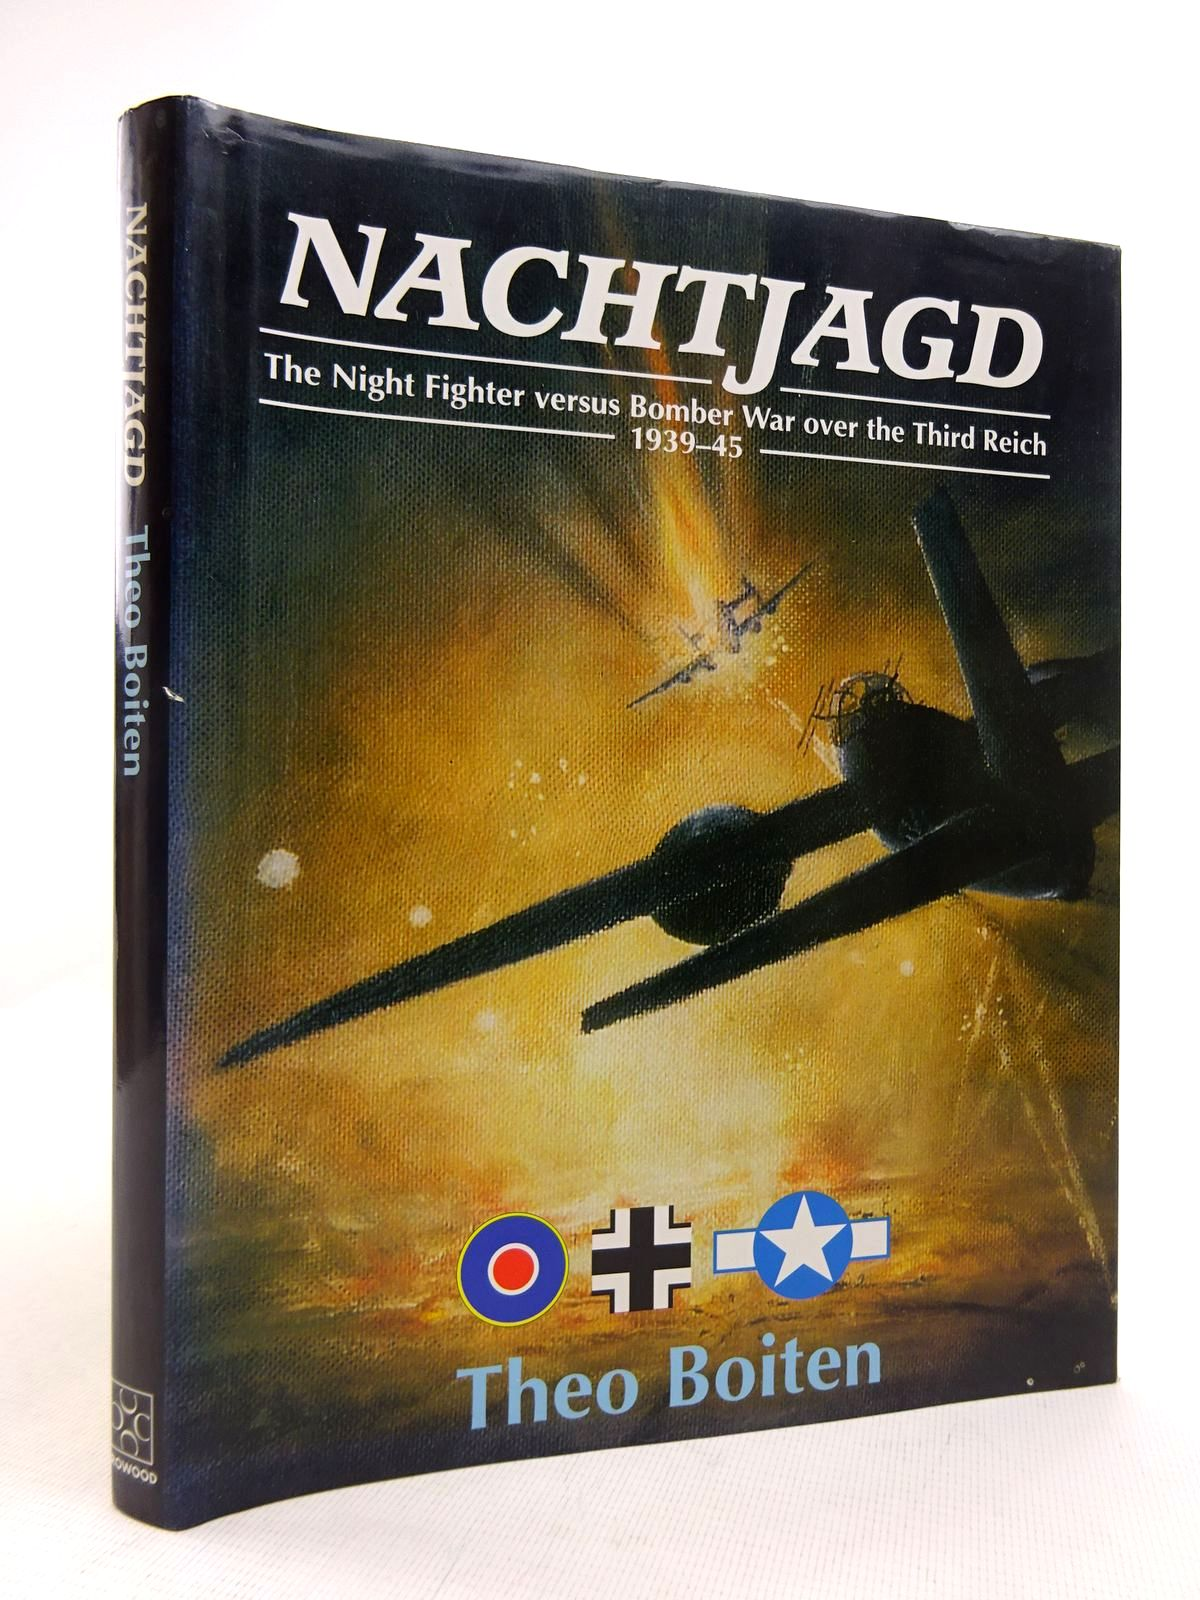 Photo of NACHTJAGD: THE NIGHT FIGHTER VERSUS BOMBER WAR OVER THE THIRD REICH 1939-45 written by Boiten, Theo published by The Crowood Press (STOCK CODE: 1816833)  for sale by Stella & Rose's Books